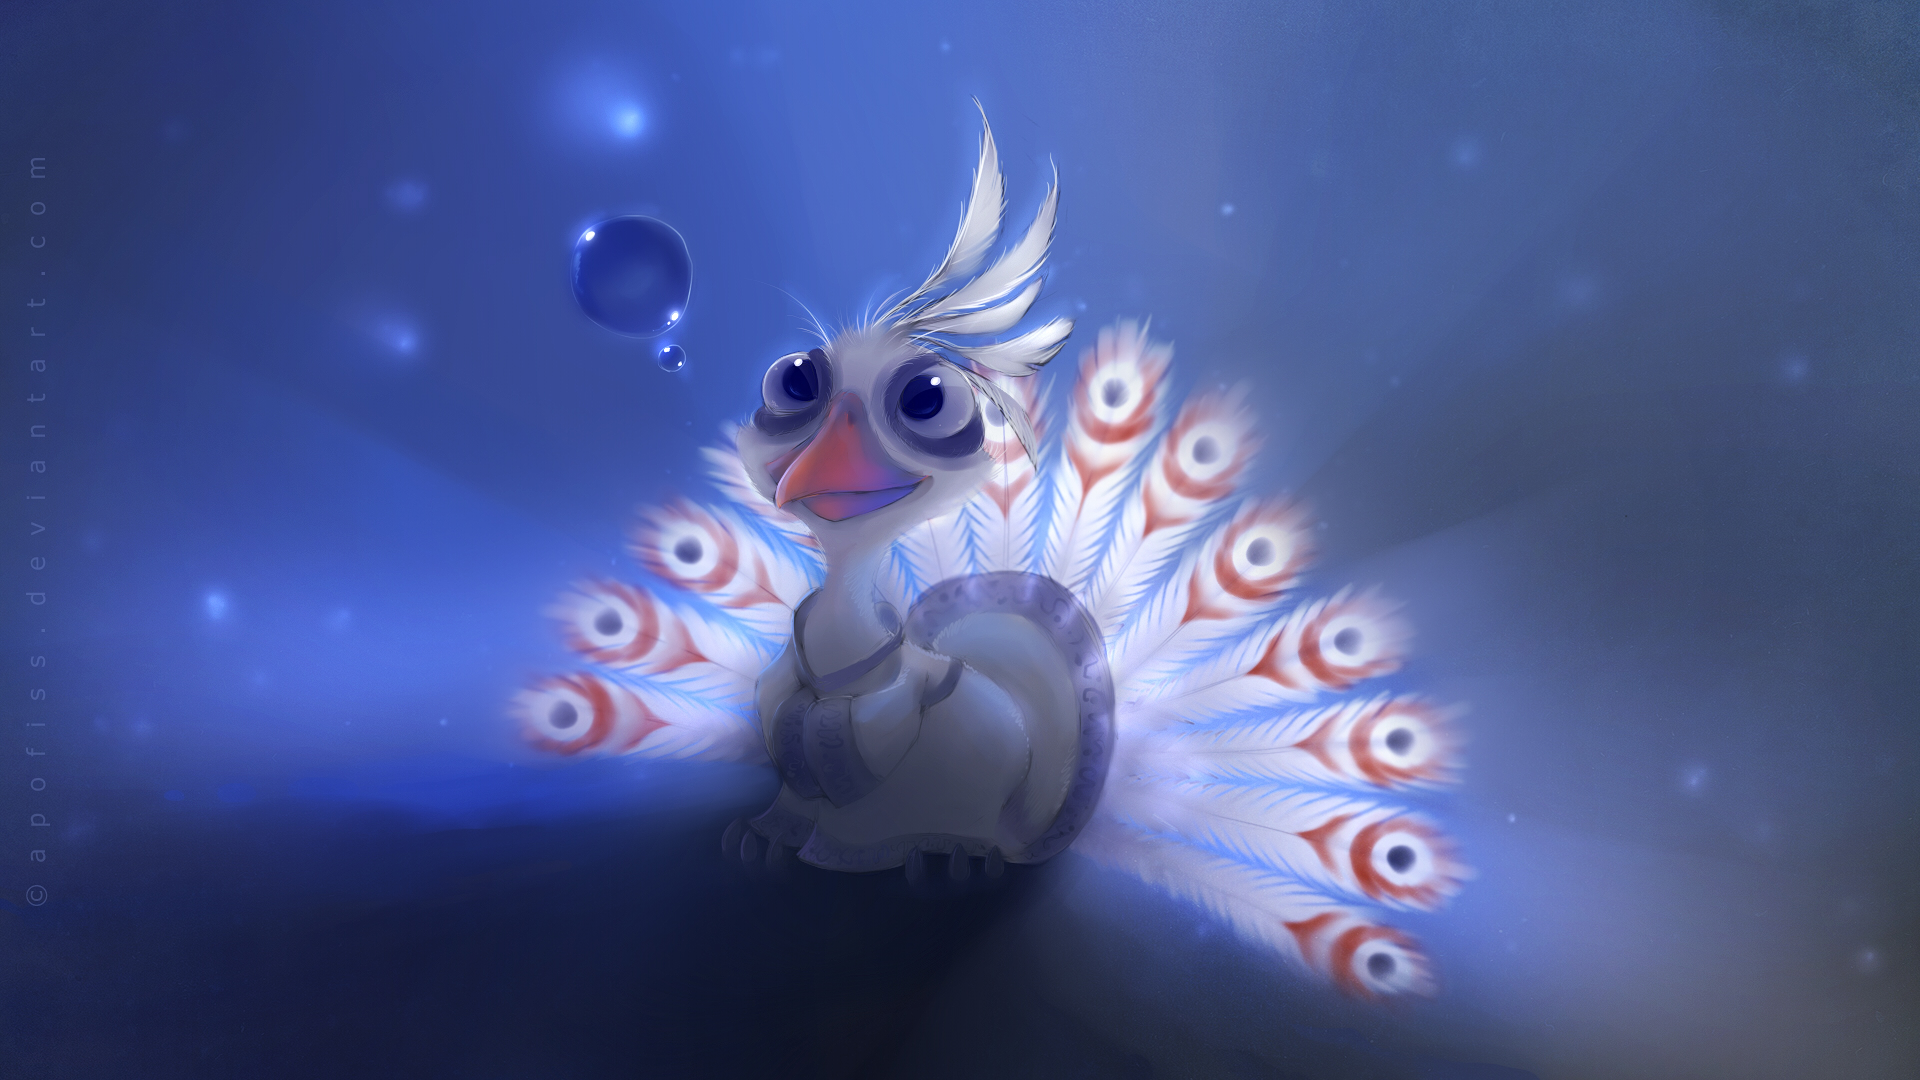 Cute Peacock Images | 3D